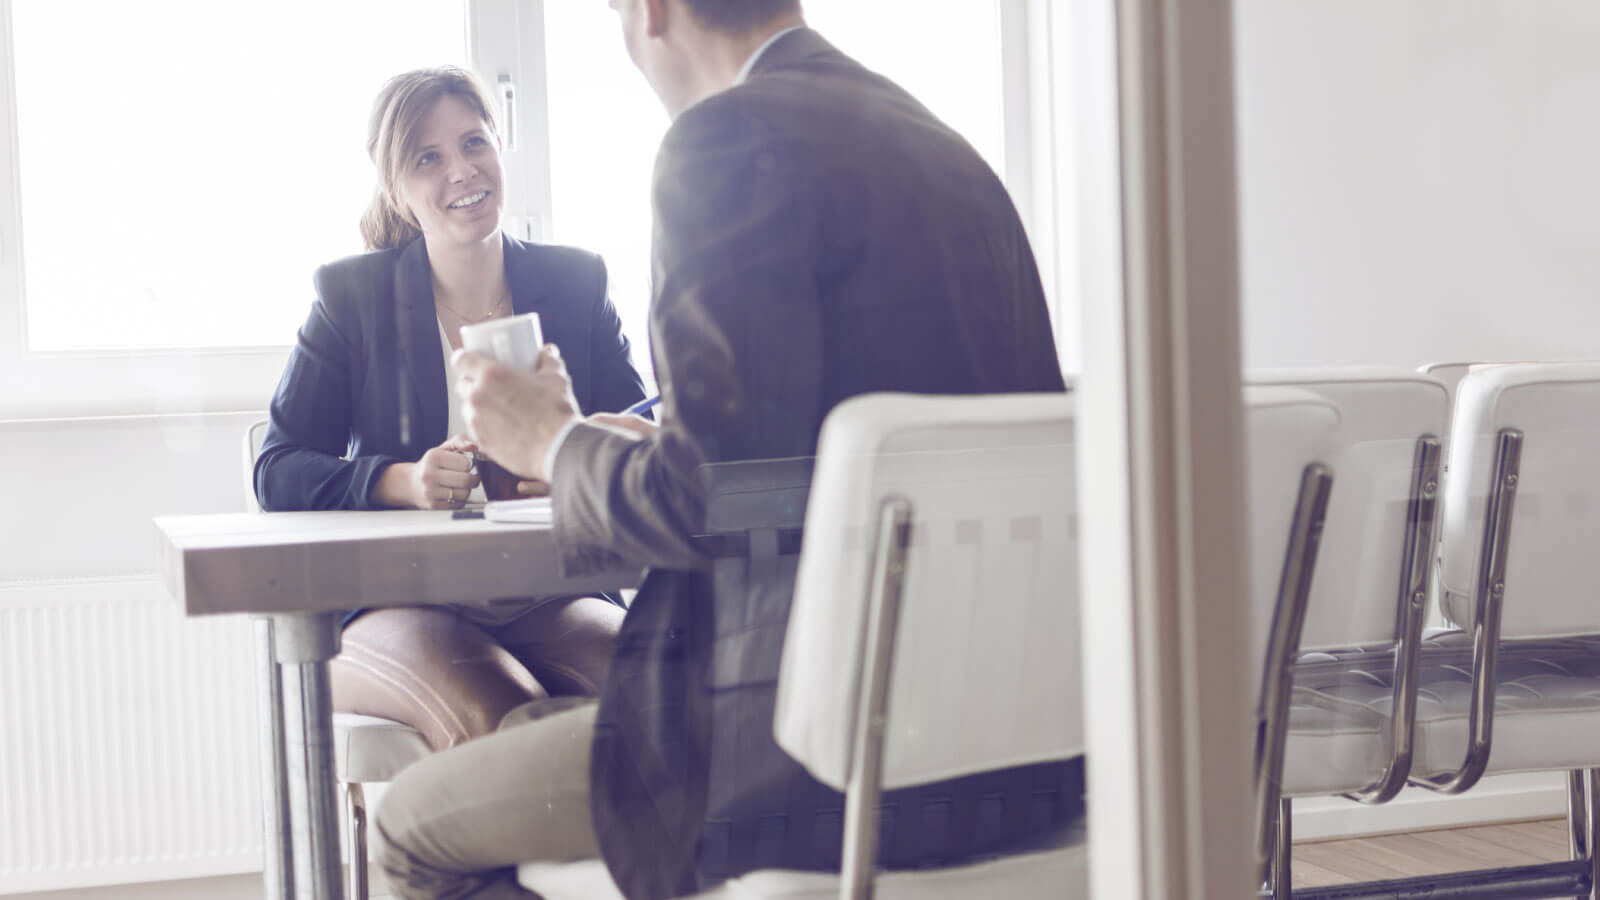 Why Should We Hire You? 5 Strategies for Answering This